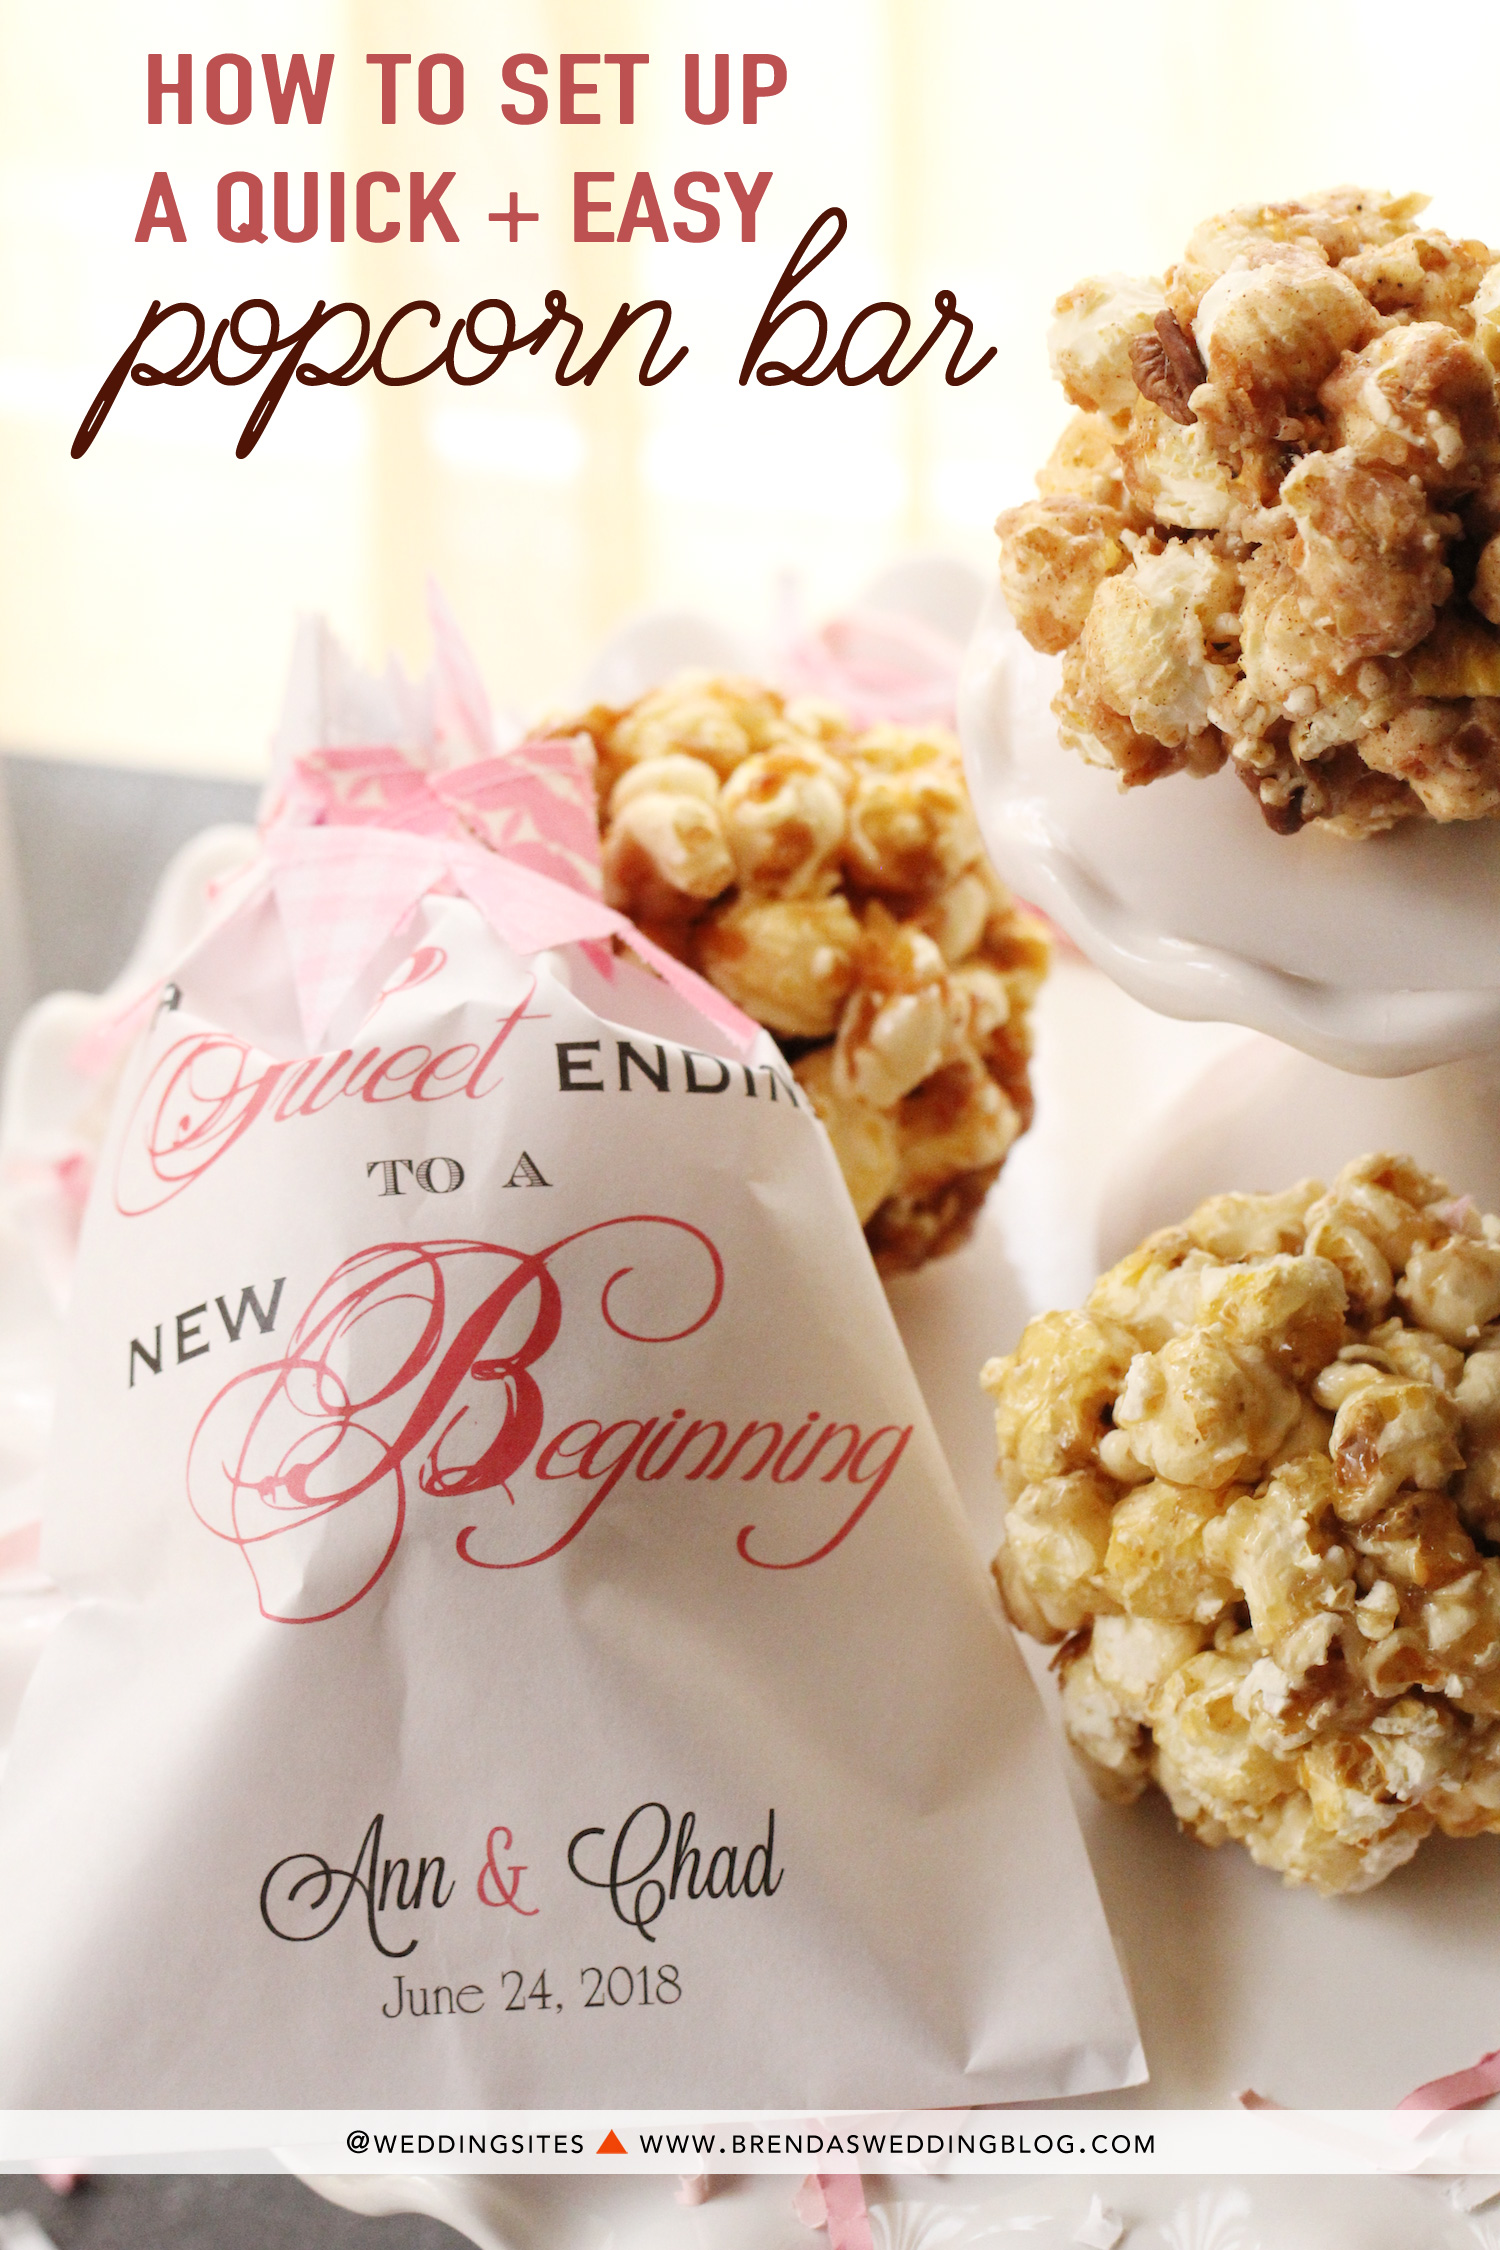 How to set up a quick and easy popcorn bar at your wedding reception or celebration. Find styling tips and how to gather a few supplies and handmade popcorn balls {pre-made artisan popcorn balls} to surprise your party guests with an edible party favor to take home. As seen on www.BrendasWeddingBlog.com